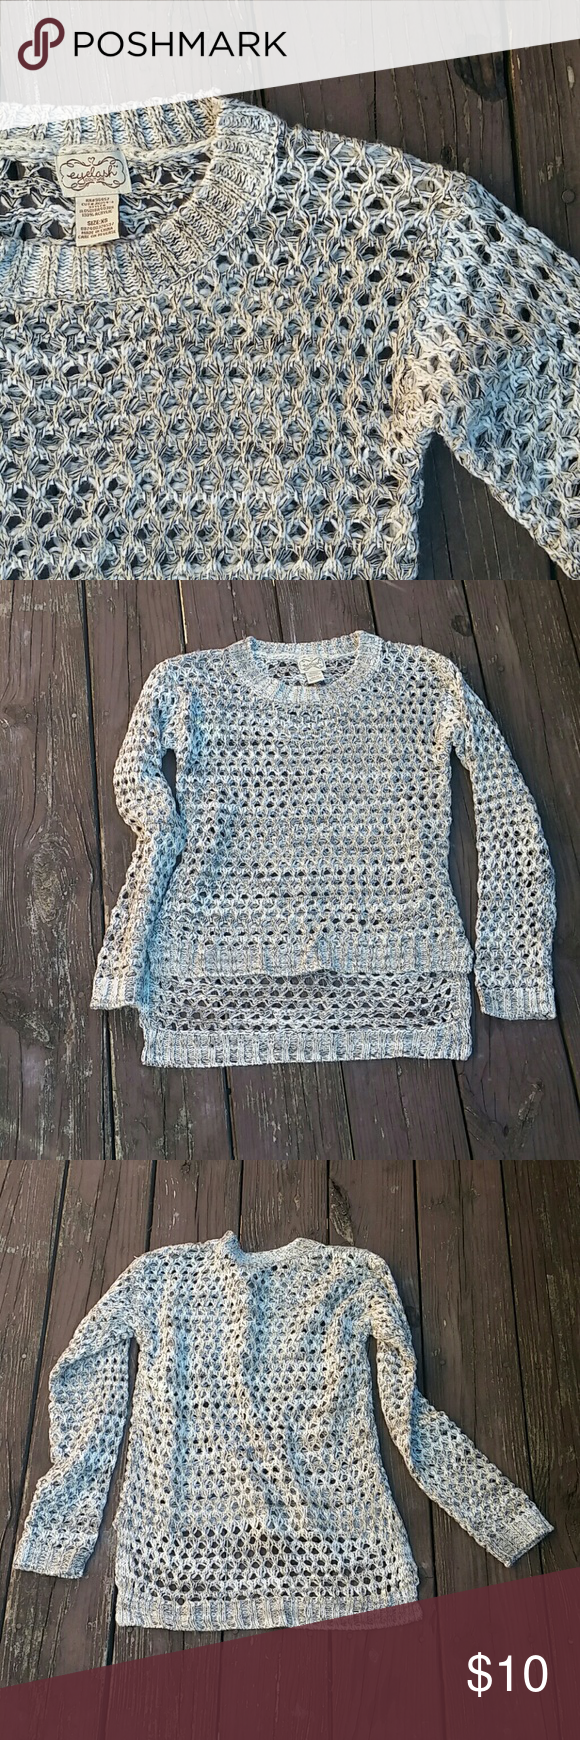 Super cute sweater Sweater in great condition! Size extra small Sweaters